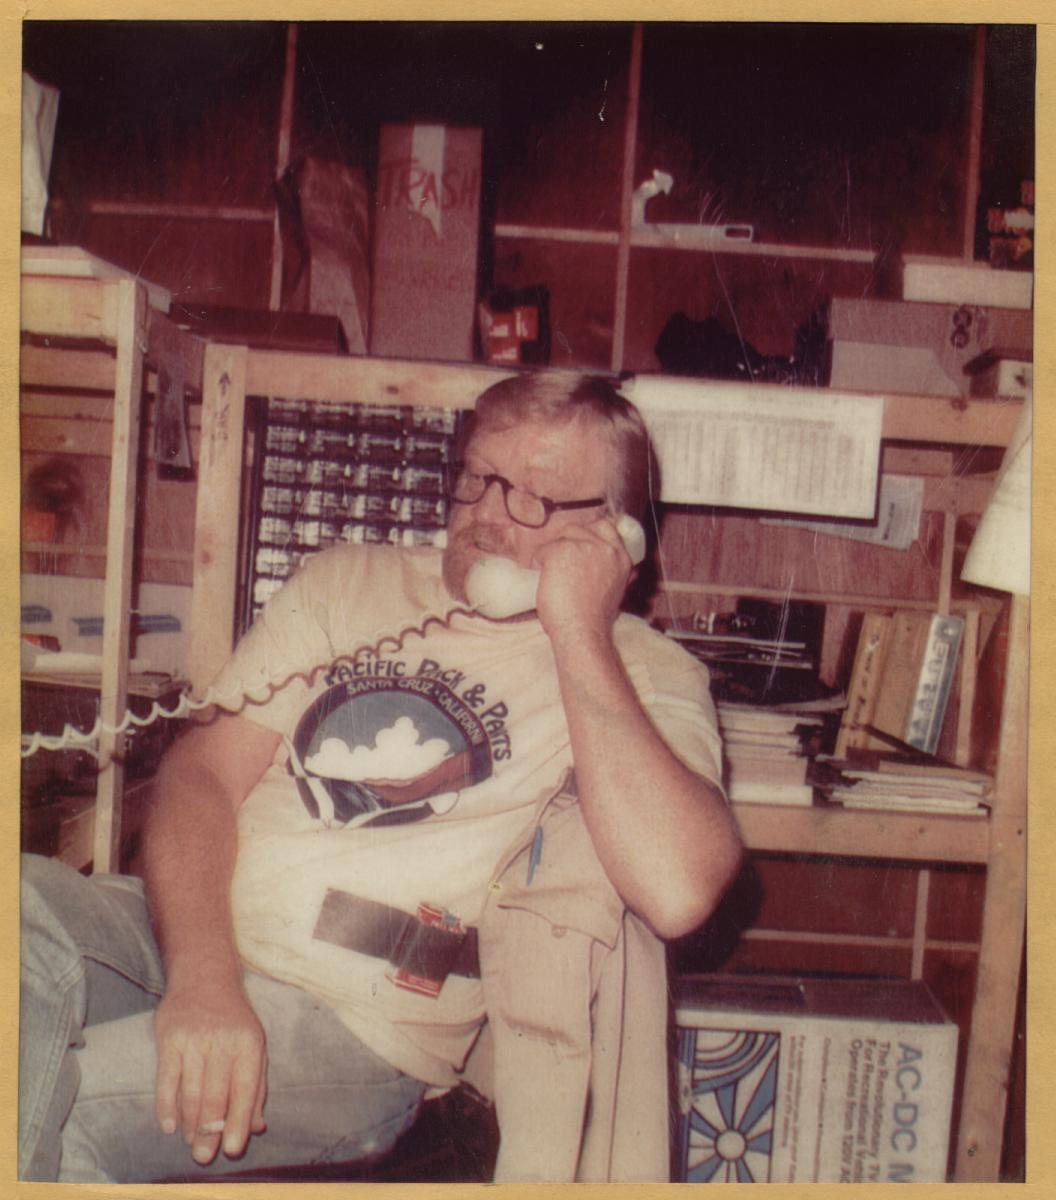 Here is a picture of the famous Chuck Gaspar back in 1981 when he was doing PeeWees Big Adventure.  His father Geza Gaspar was an Effects man, and his sons Mike are both Effects men.  Note the Pall Malls taped to his t-shirt.